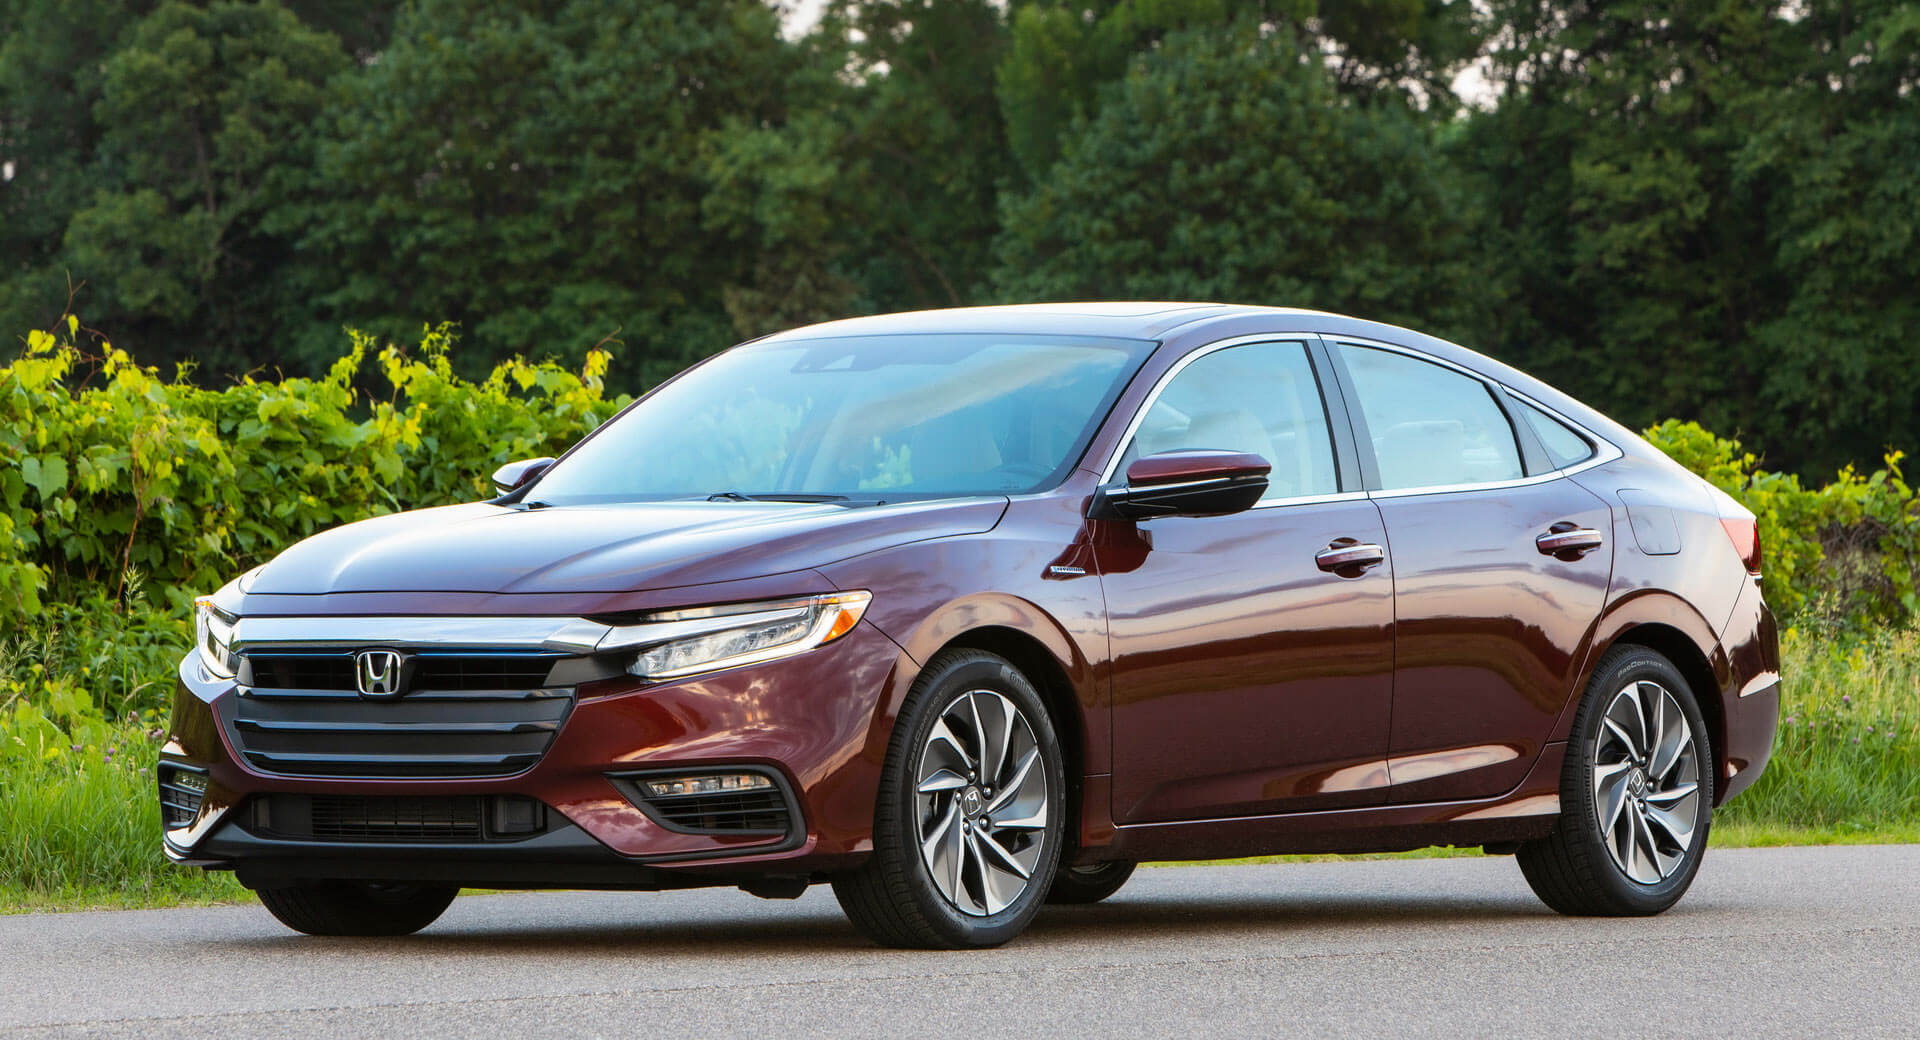 2020 Honda Insight Priced From $22,930, Gets More Standard ...